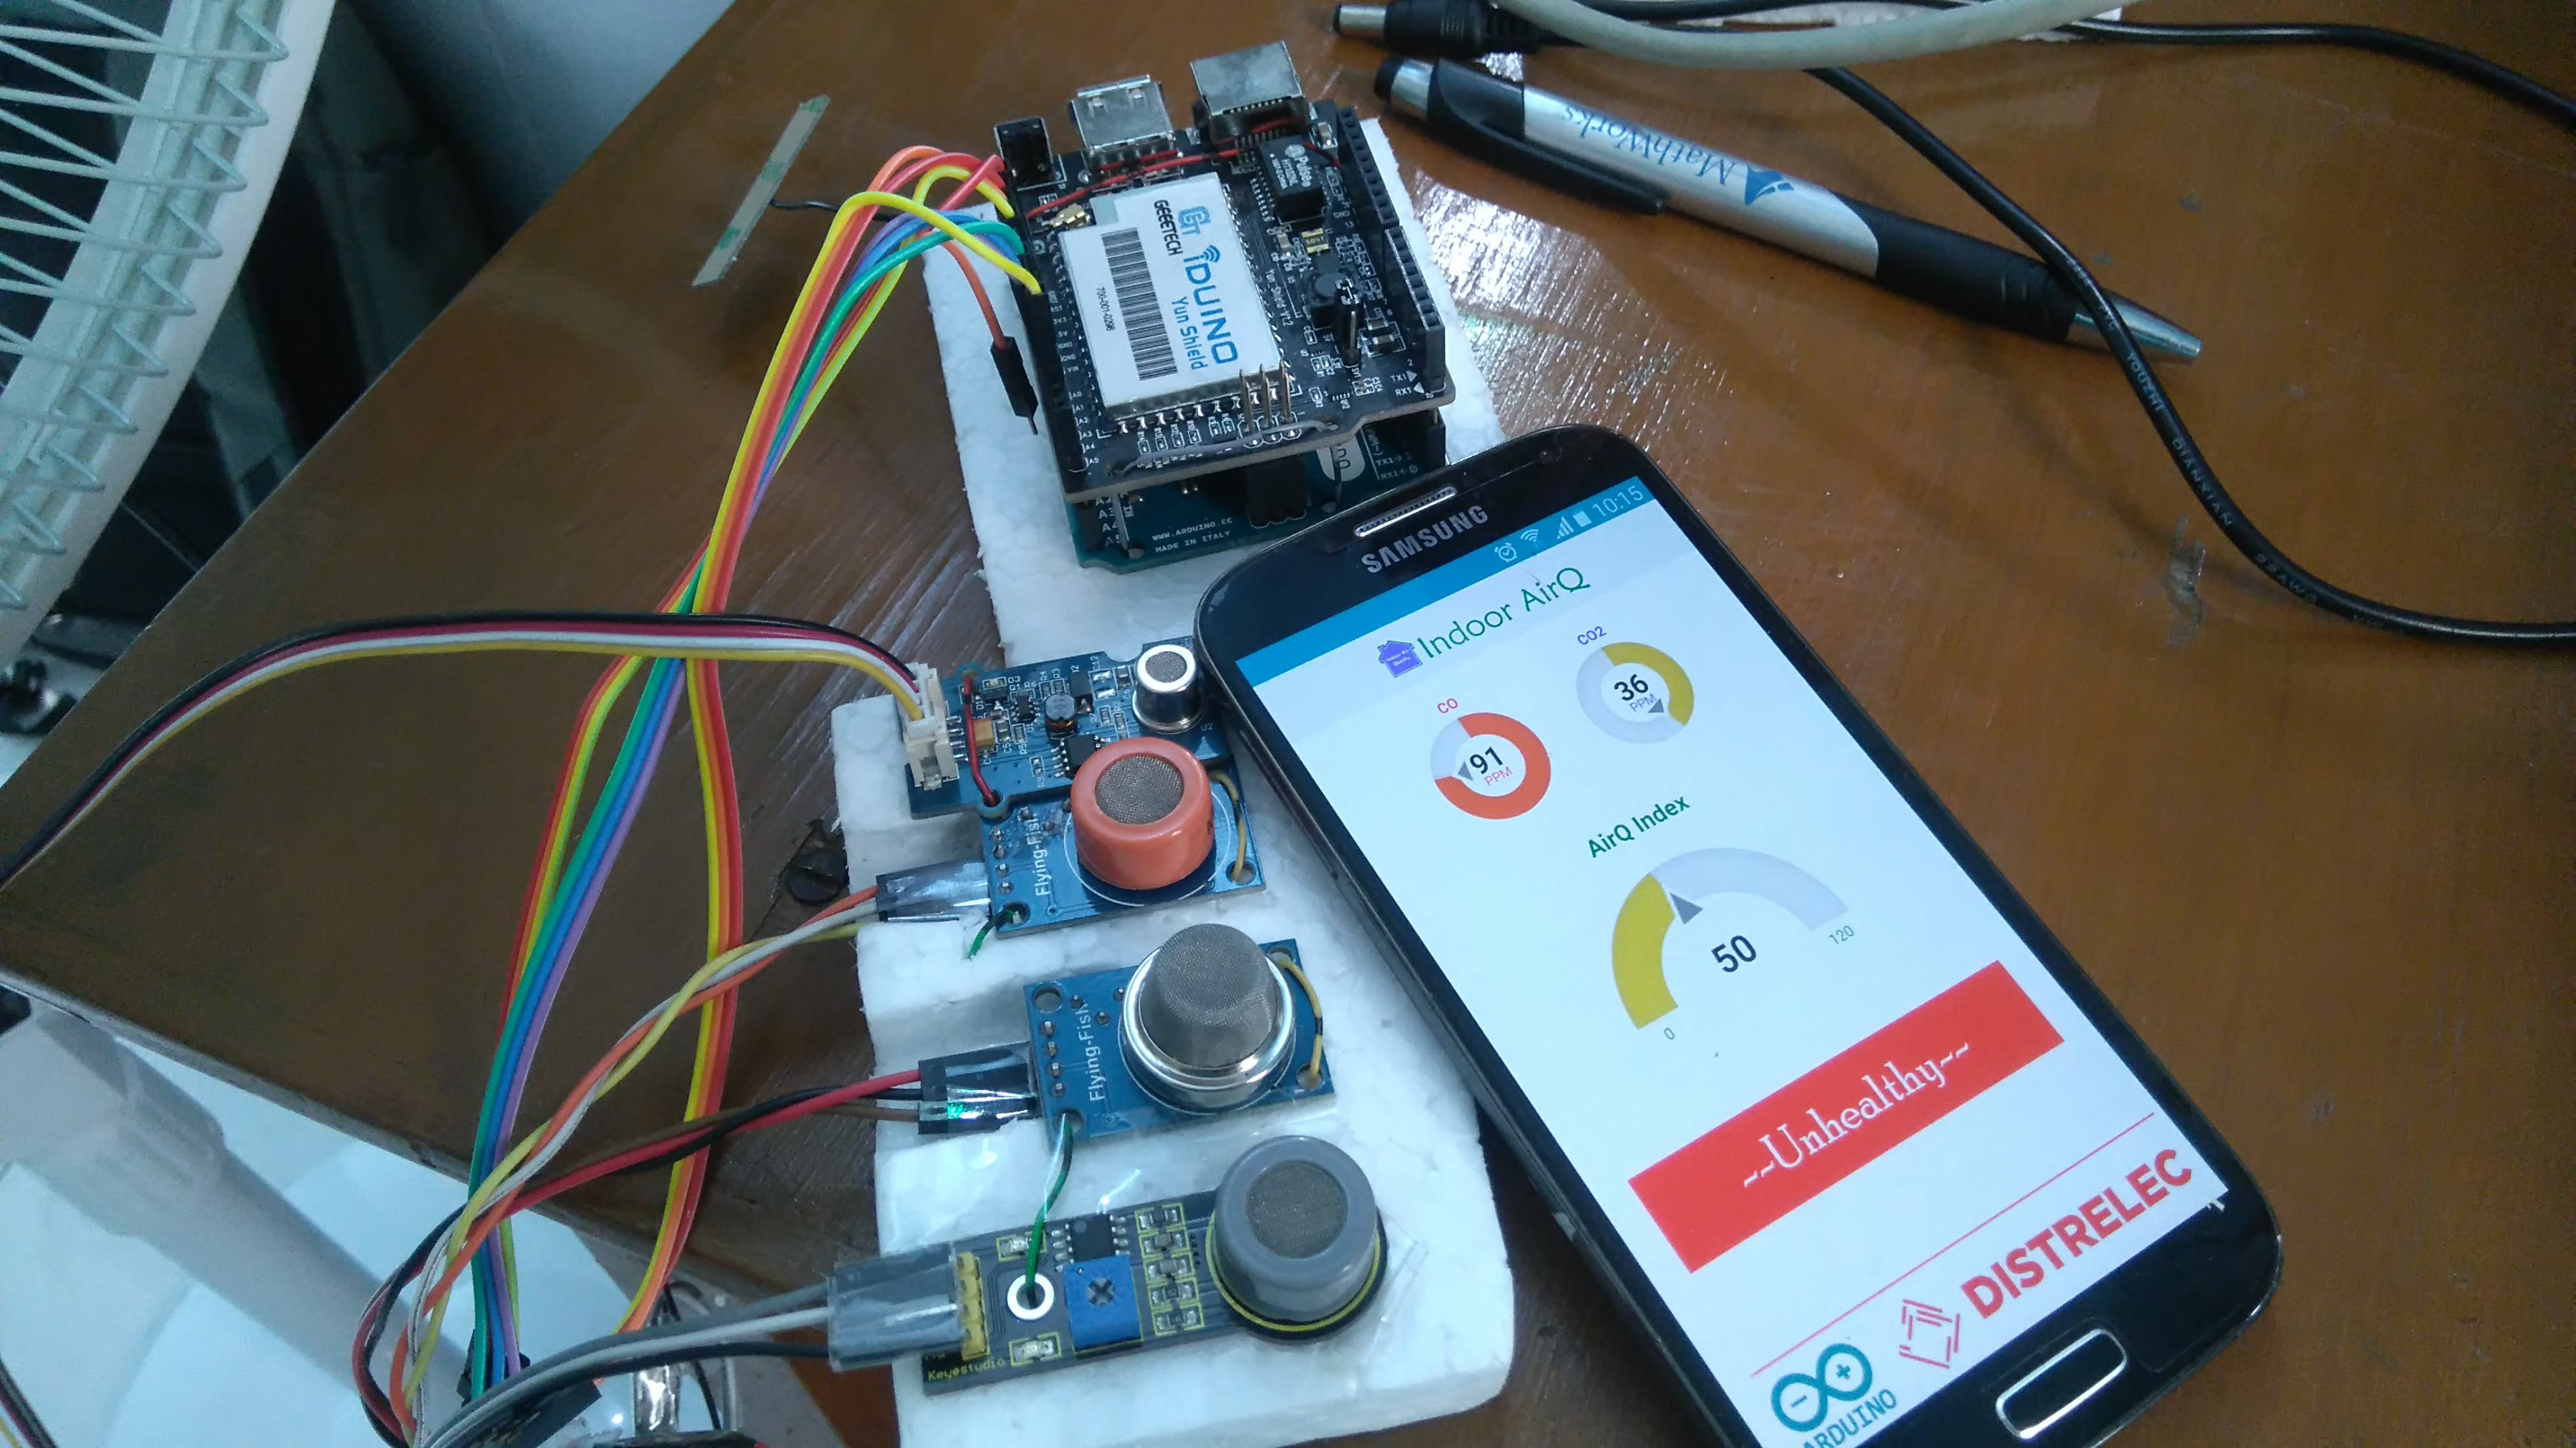 Device and mobile application